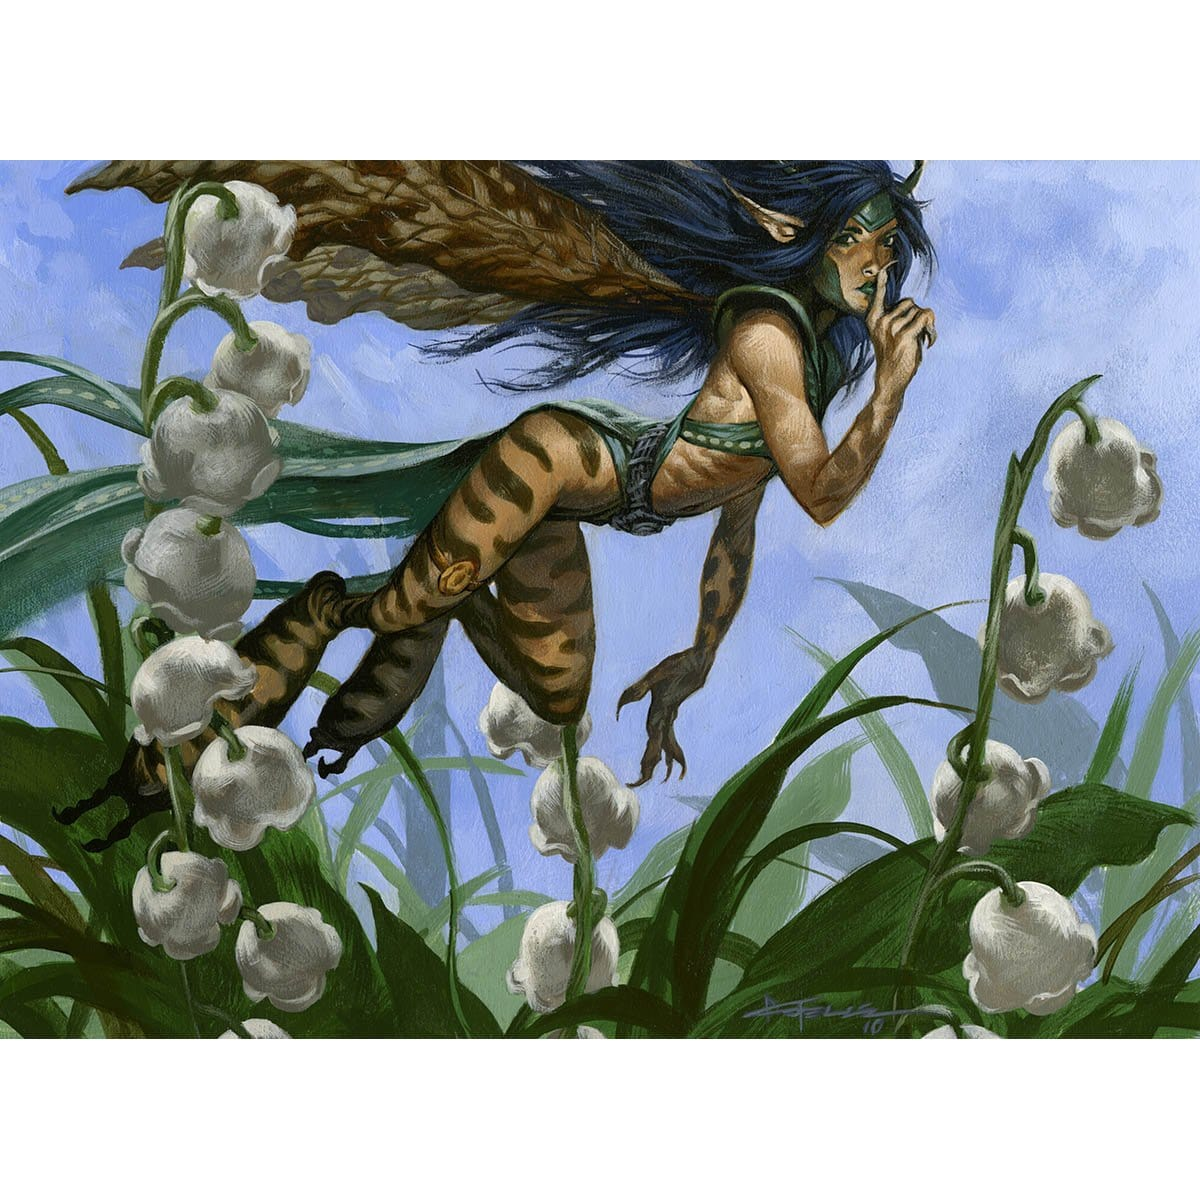 Spellstutter Sprite Print - Print - Original Magic Art - Accessories for Magic the Gathering and other card games